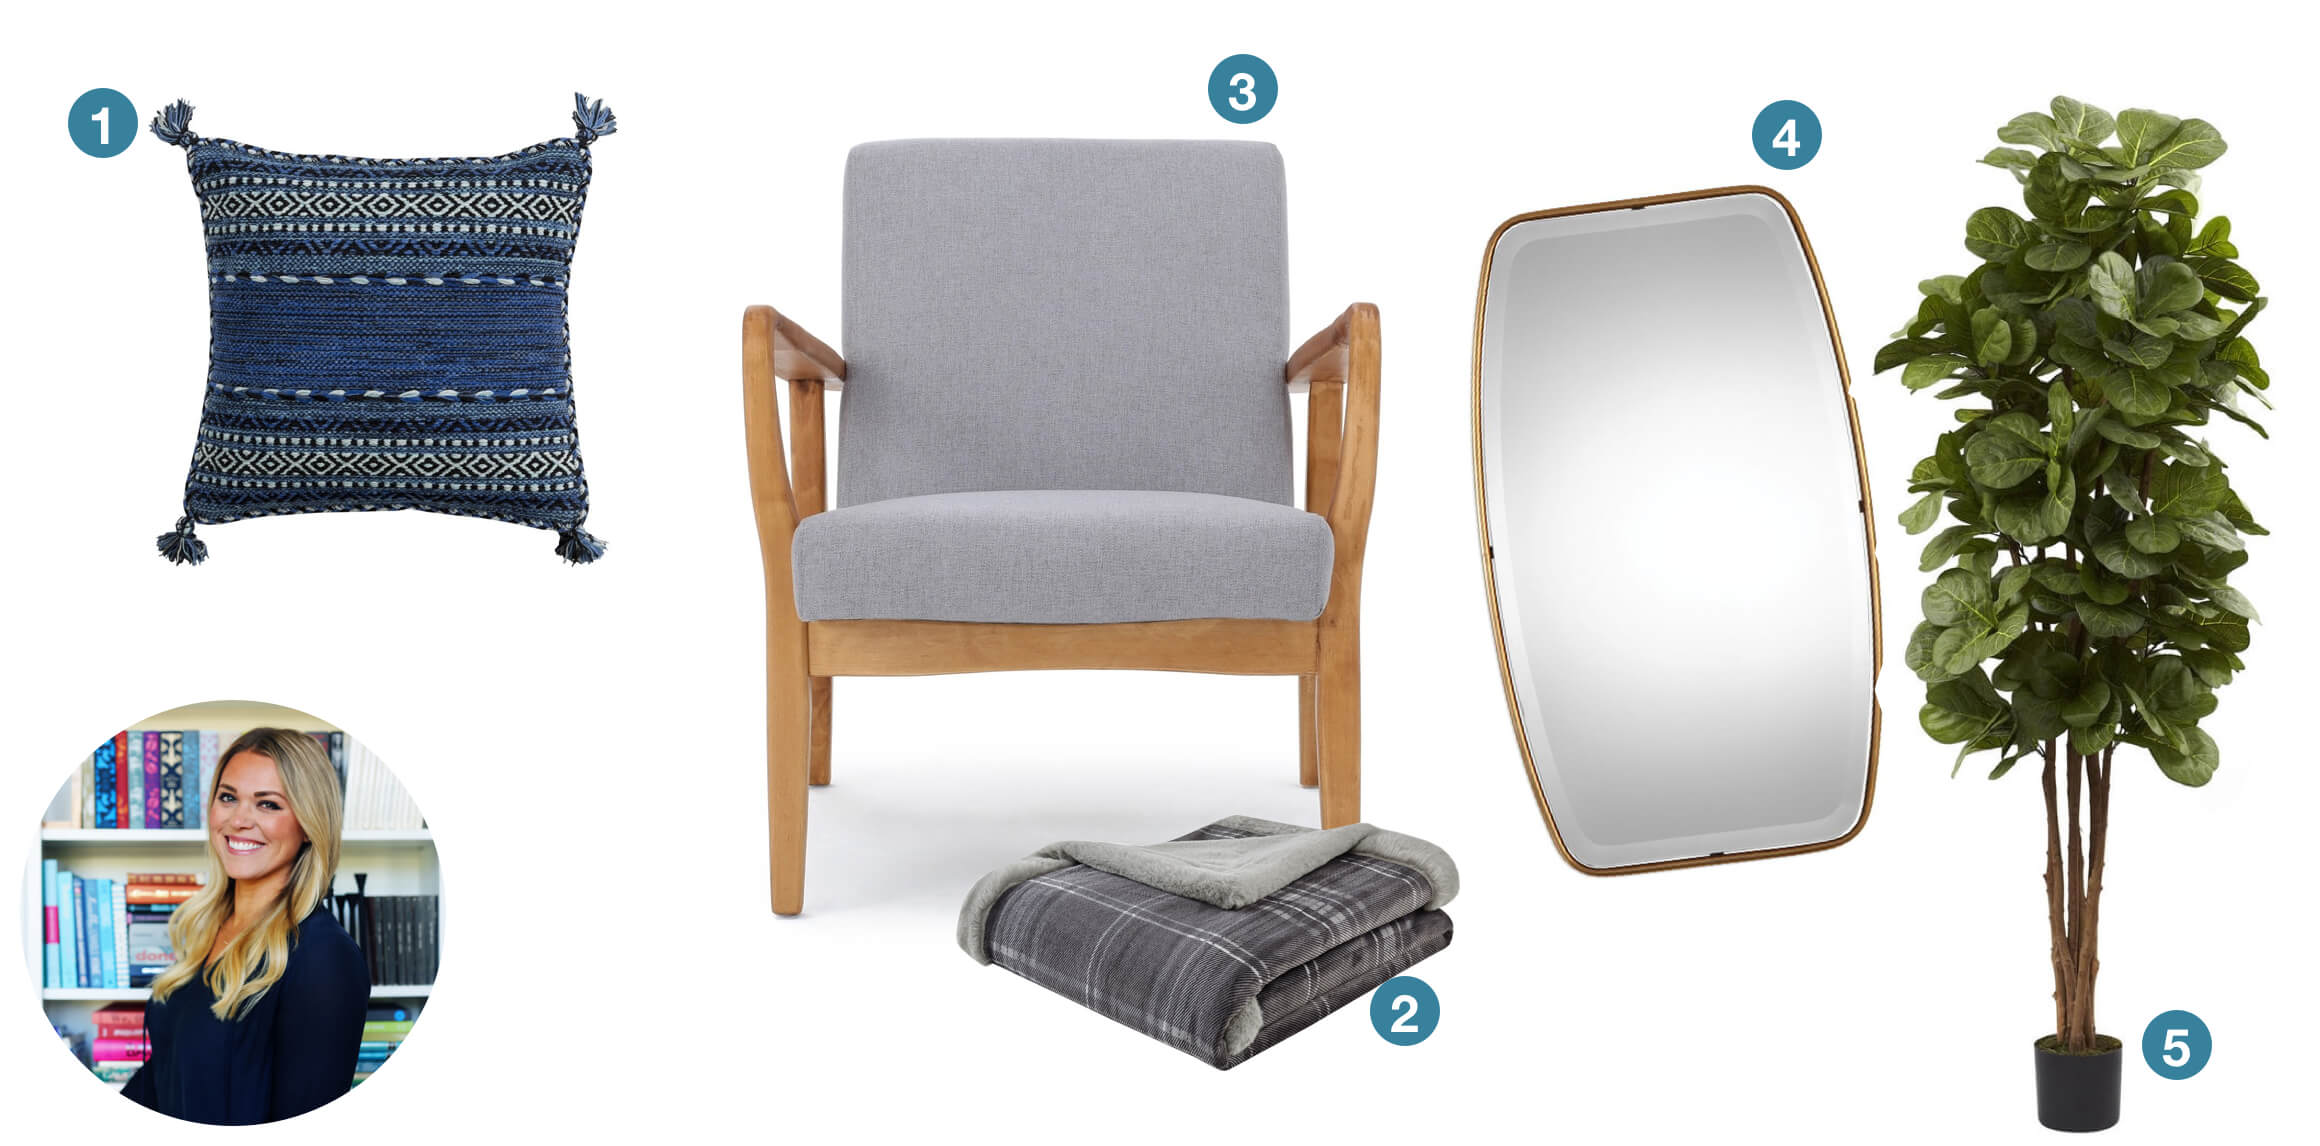 A blue tassle throw pillow, grey Mid-Century Modern chair, grey throw blanket, gold mirror, and a fuax fiddle fig plant. These are great gift ideas submitted from design blogger Little Green Notebook.